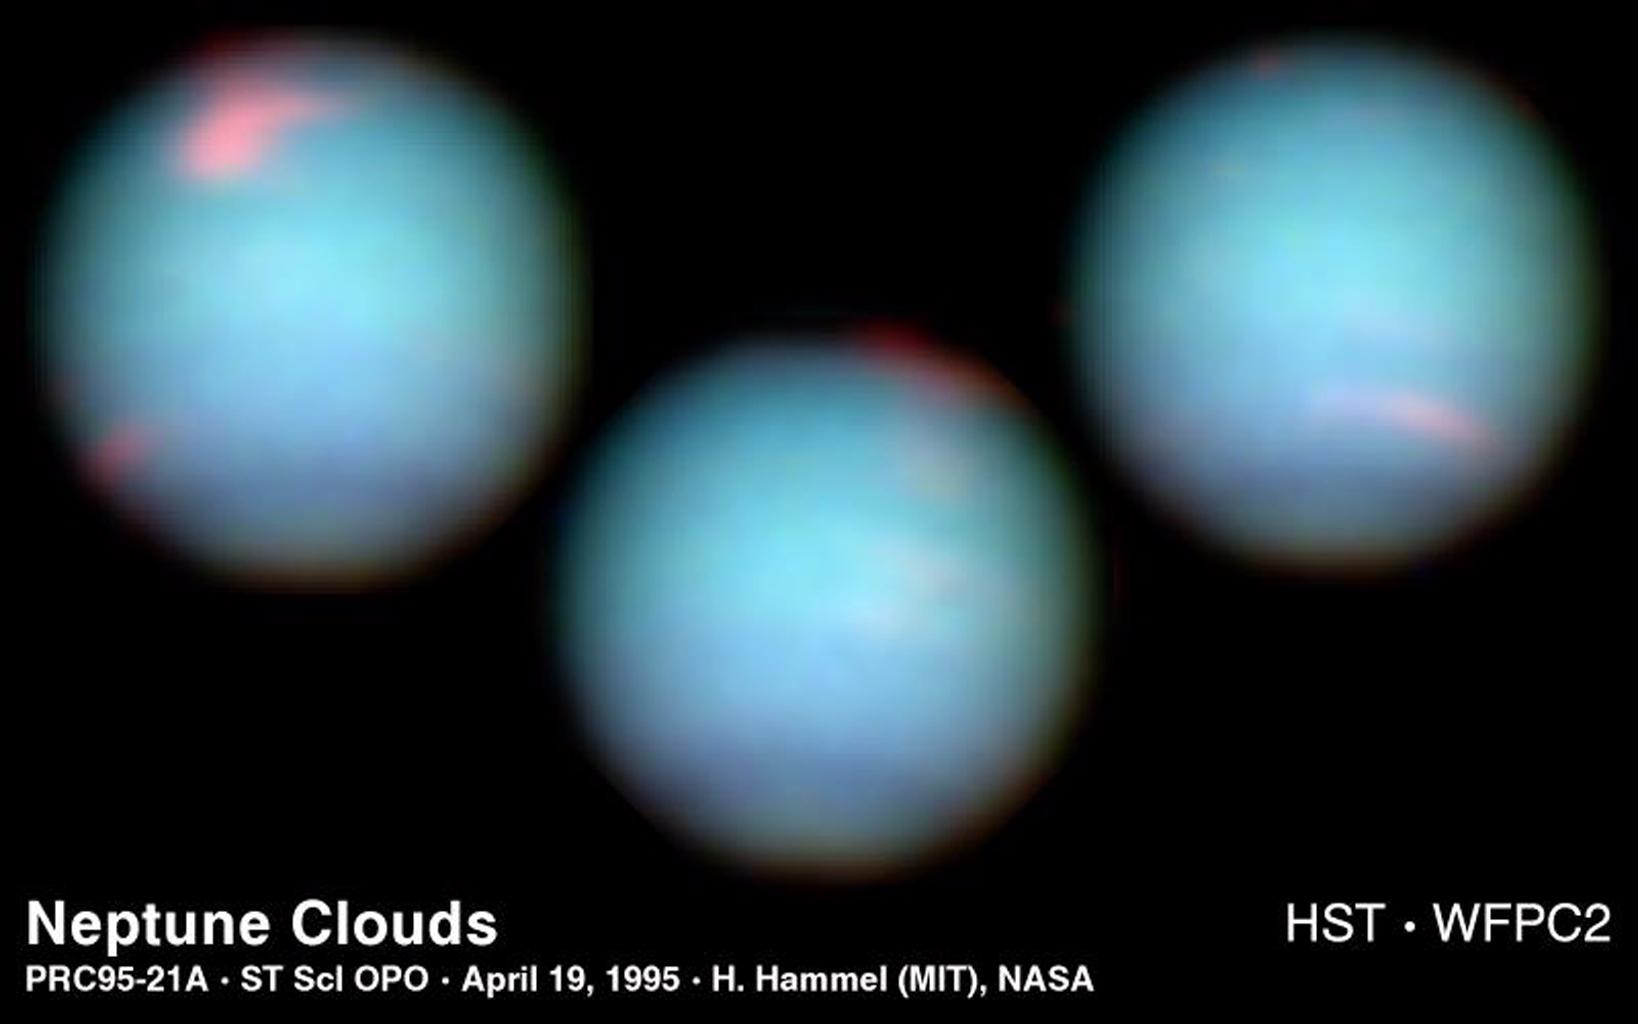 These NASA Hubble Space Telescope views of the blue-green planet Neptune provide three snapshots of changing weather conditions. The images were taken in 1994 on 3 separate days when Neptune was 2.8 billion miles (4.5 billion kilometers) from Earth.